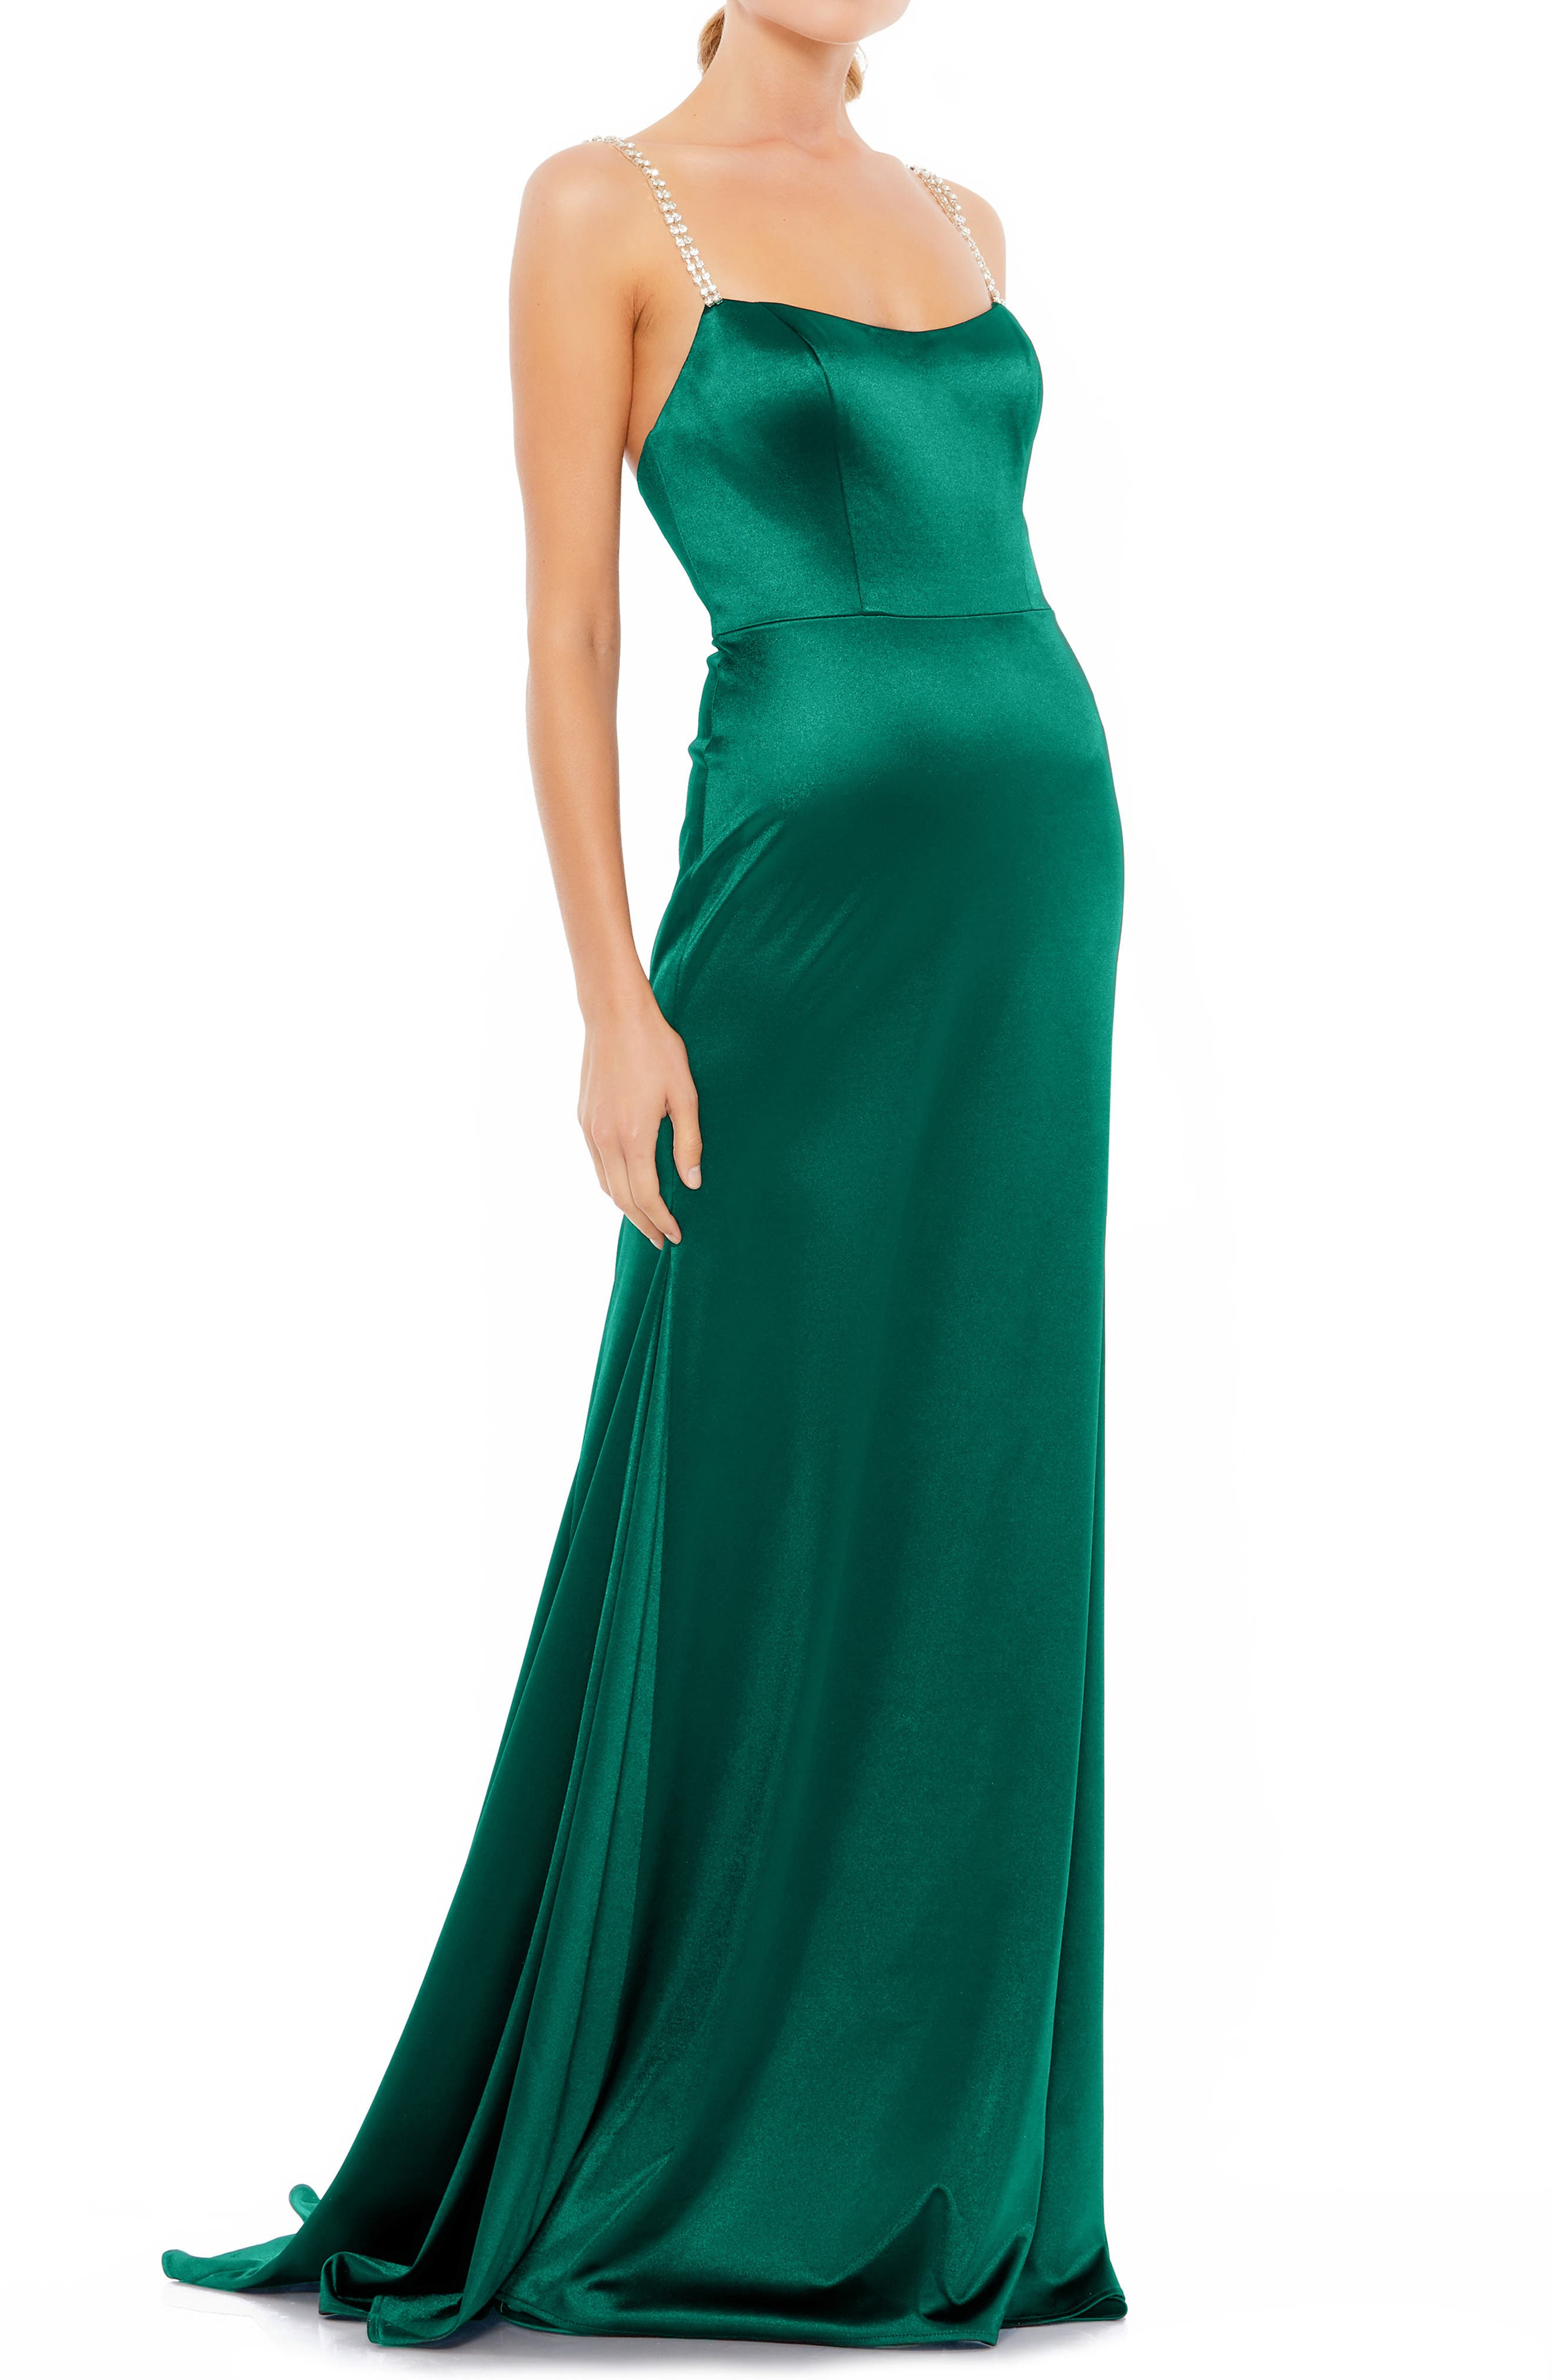 Vintage 1930s Formal, Party Dresses History Womens MAC Duggal Square Neck Sheath Gown Size 12 - Green $398.00 AT vintagedancer.com